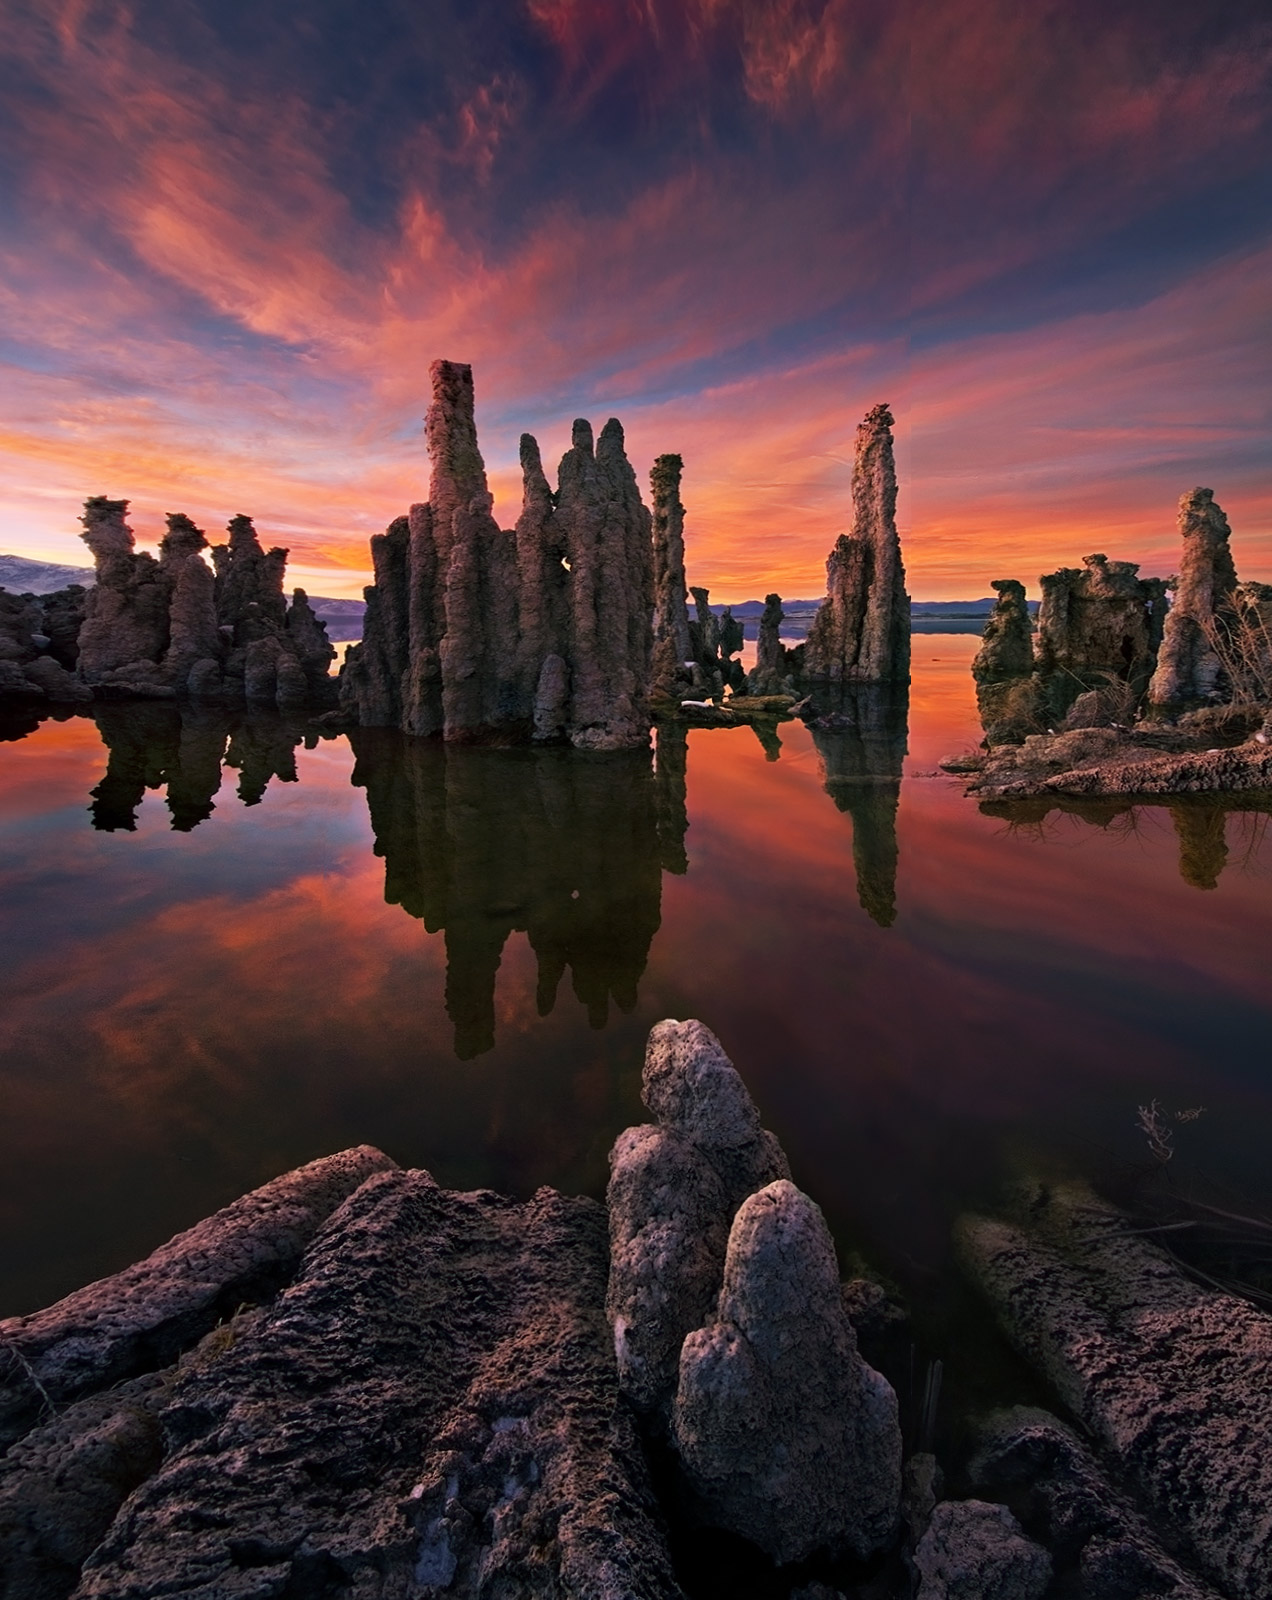 Some powerful light at Mono Lake, California. What else can I say...